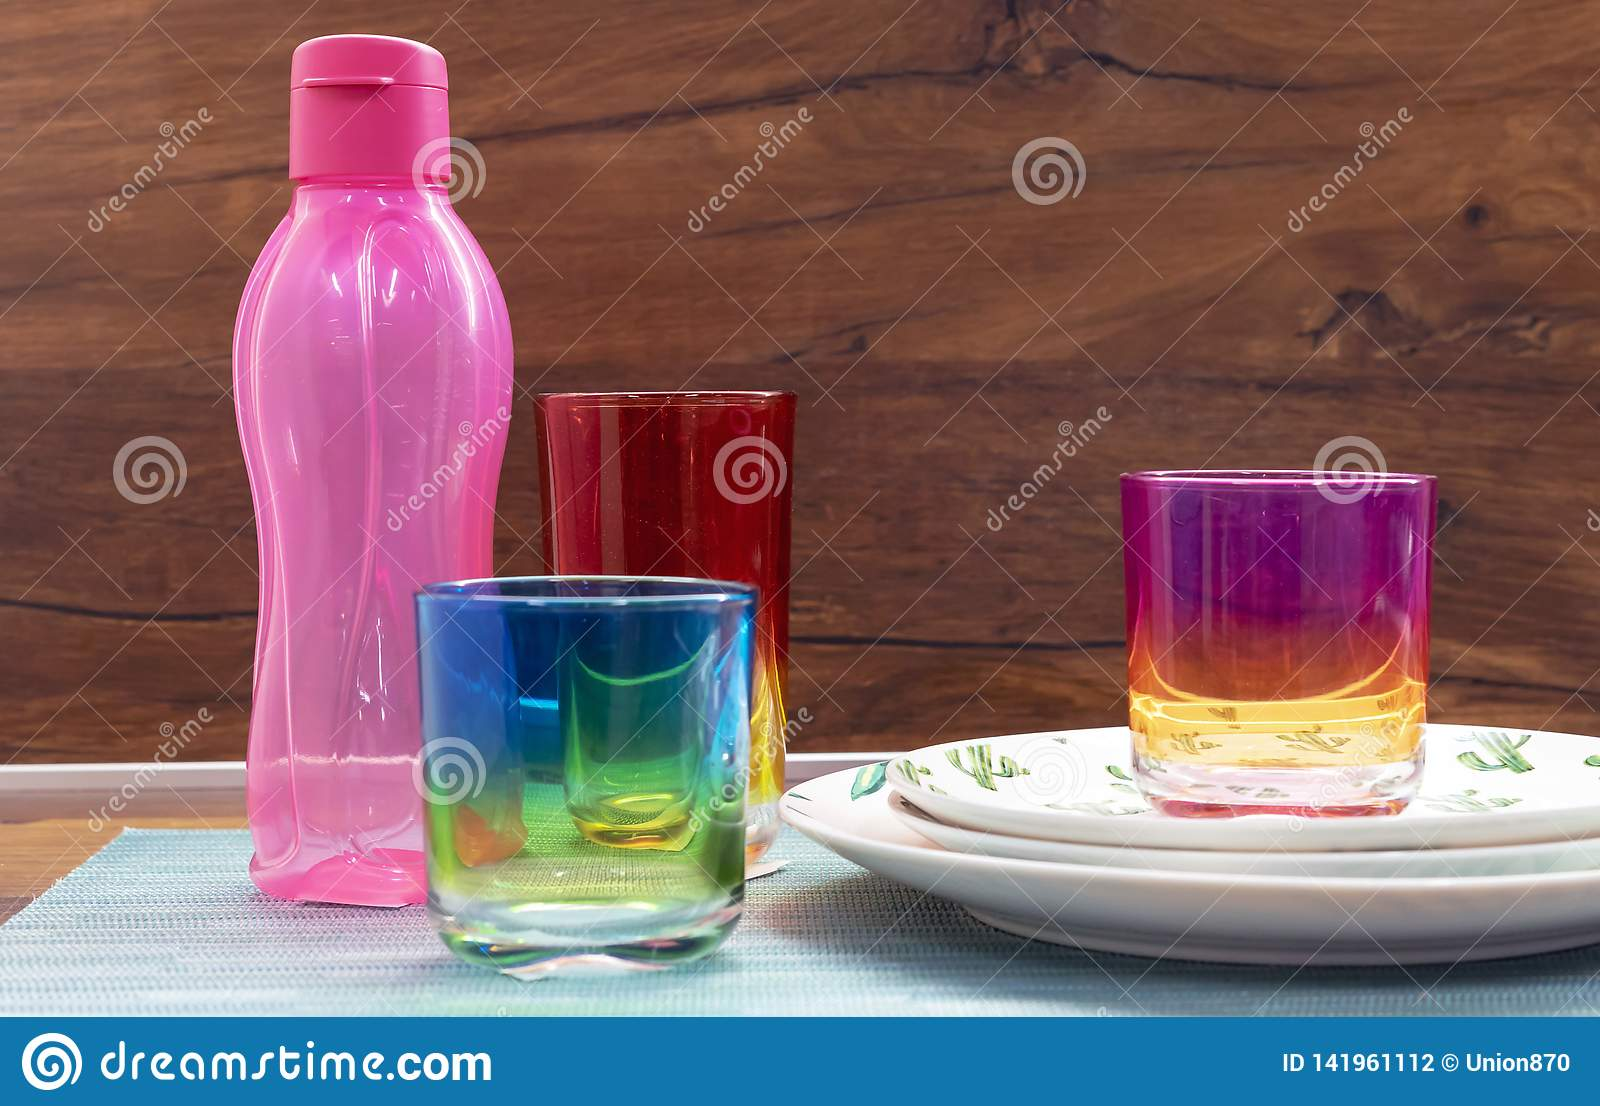 Glasses from multi-colored glass and a pink bottle for cold drinks